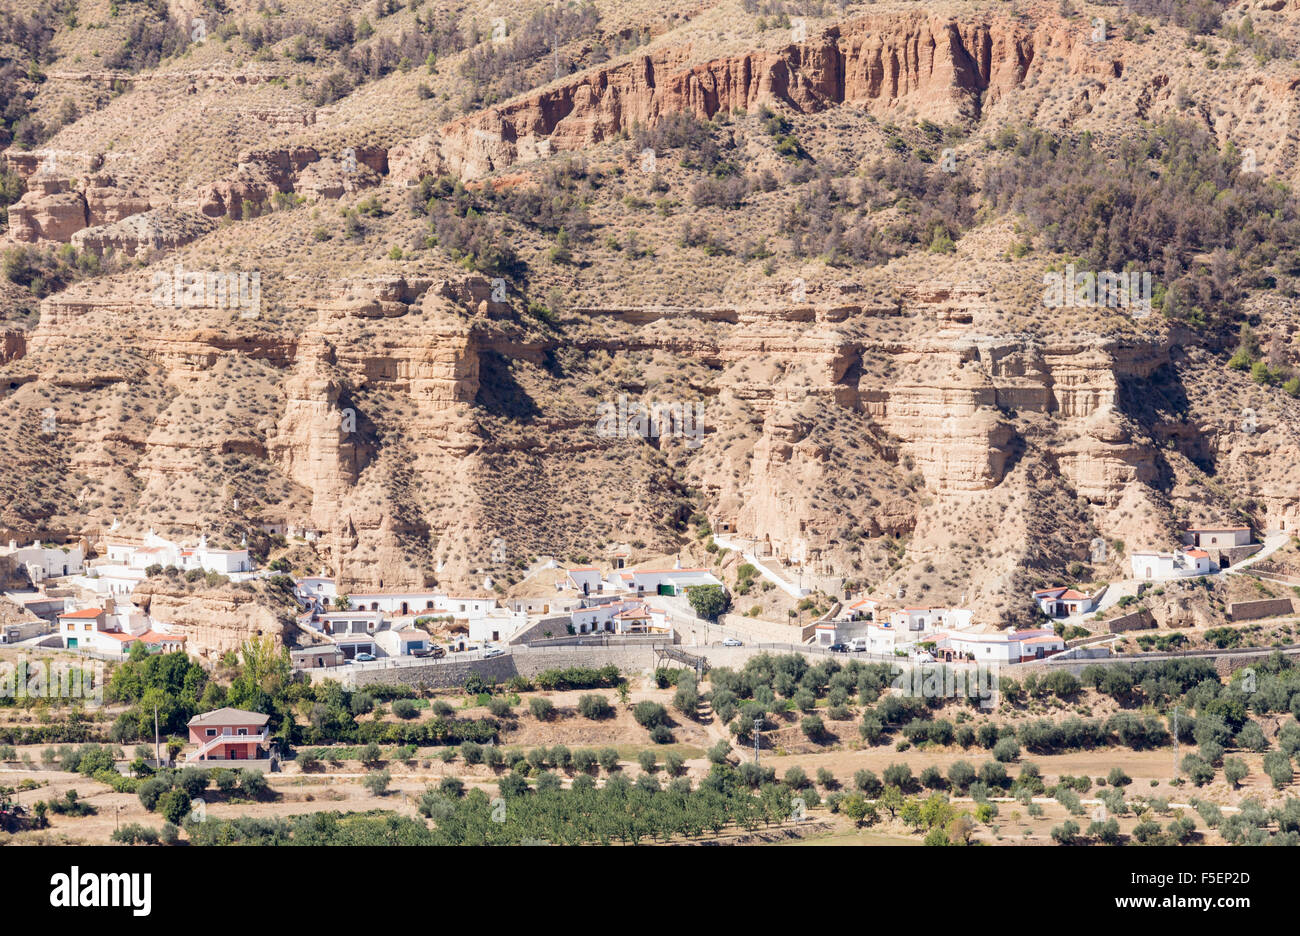 Los Banos village near Guadix, Andalucia, Spain - Stock Image